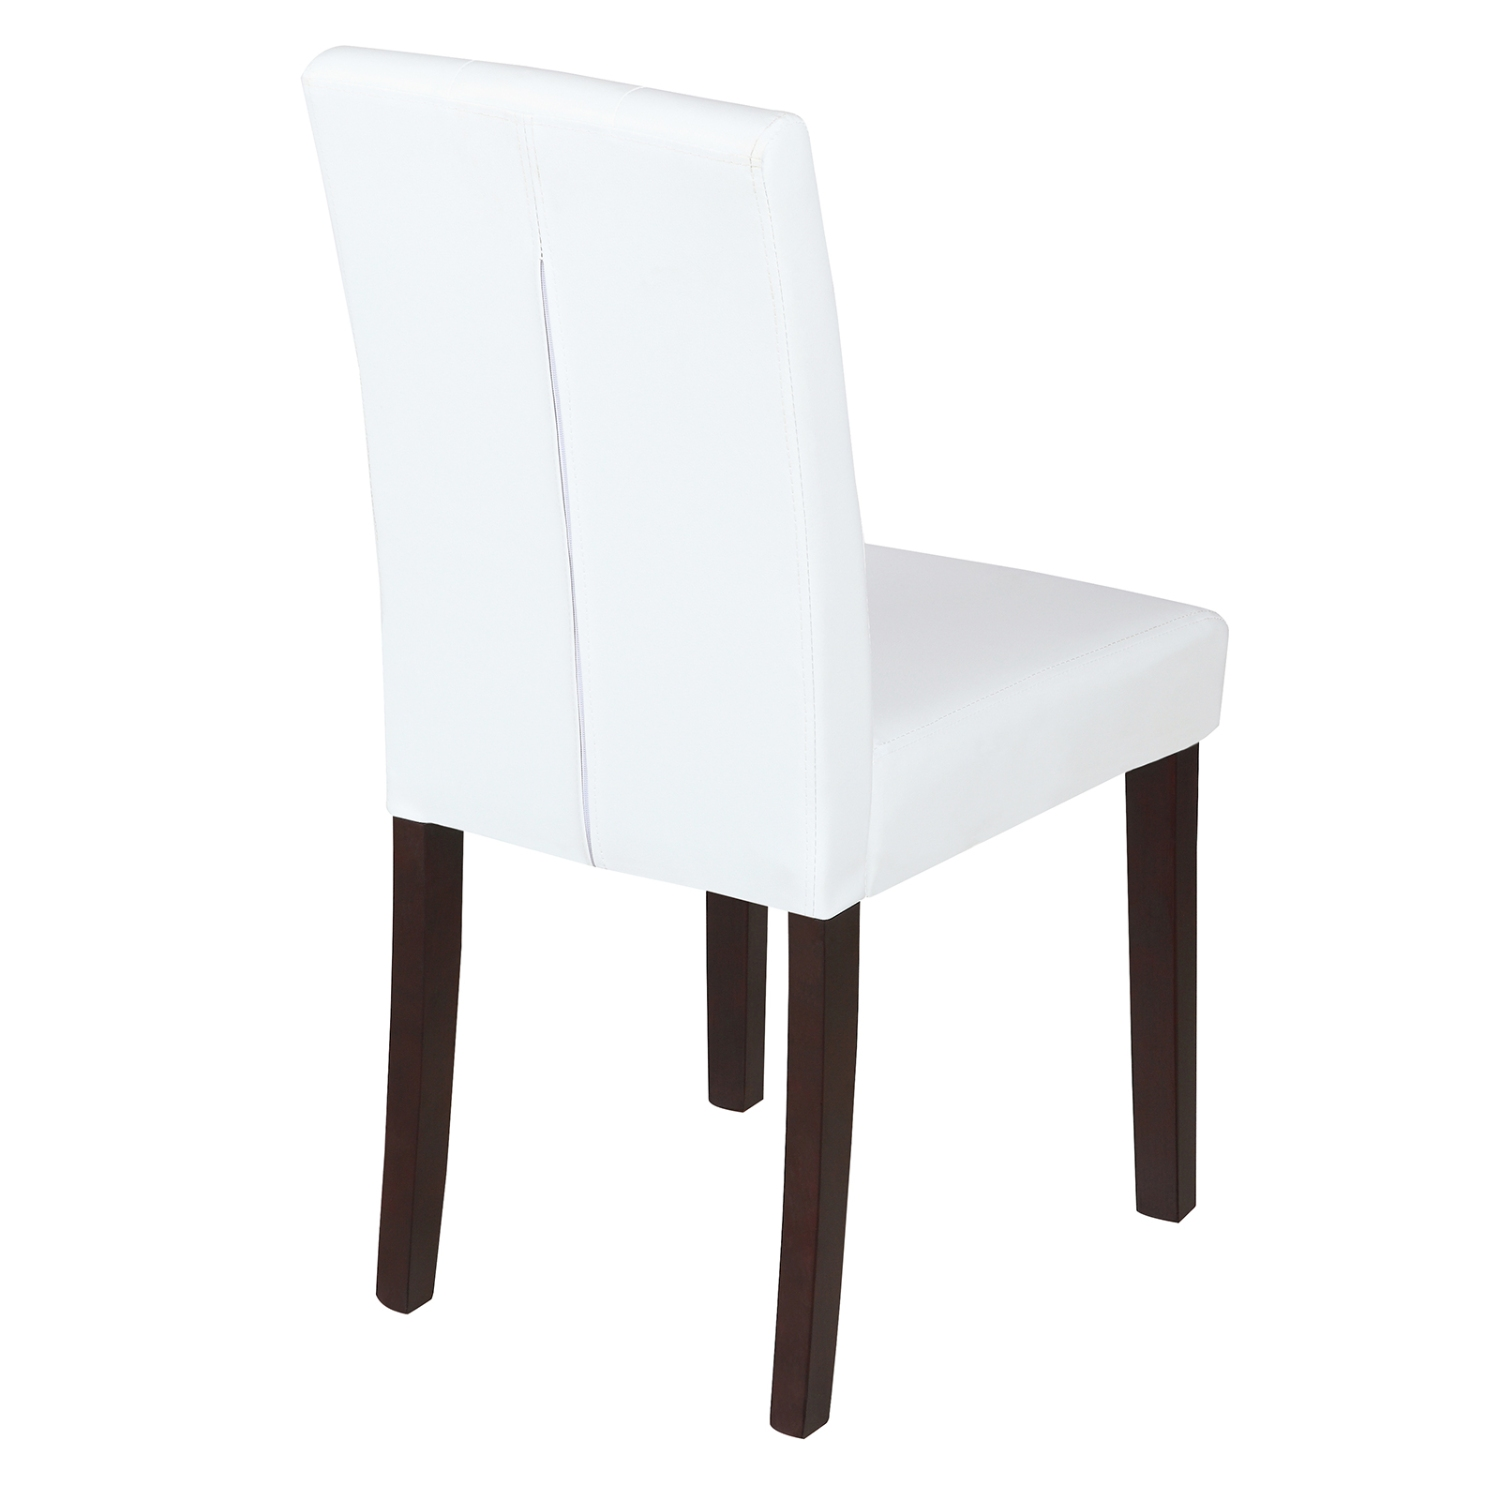 Kitchen Chairs White: Elegant Ivory White Leather Dining Room Chair Kitchen